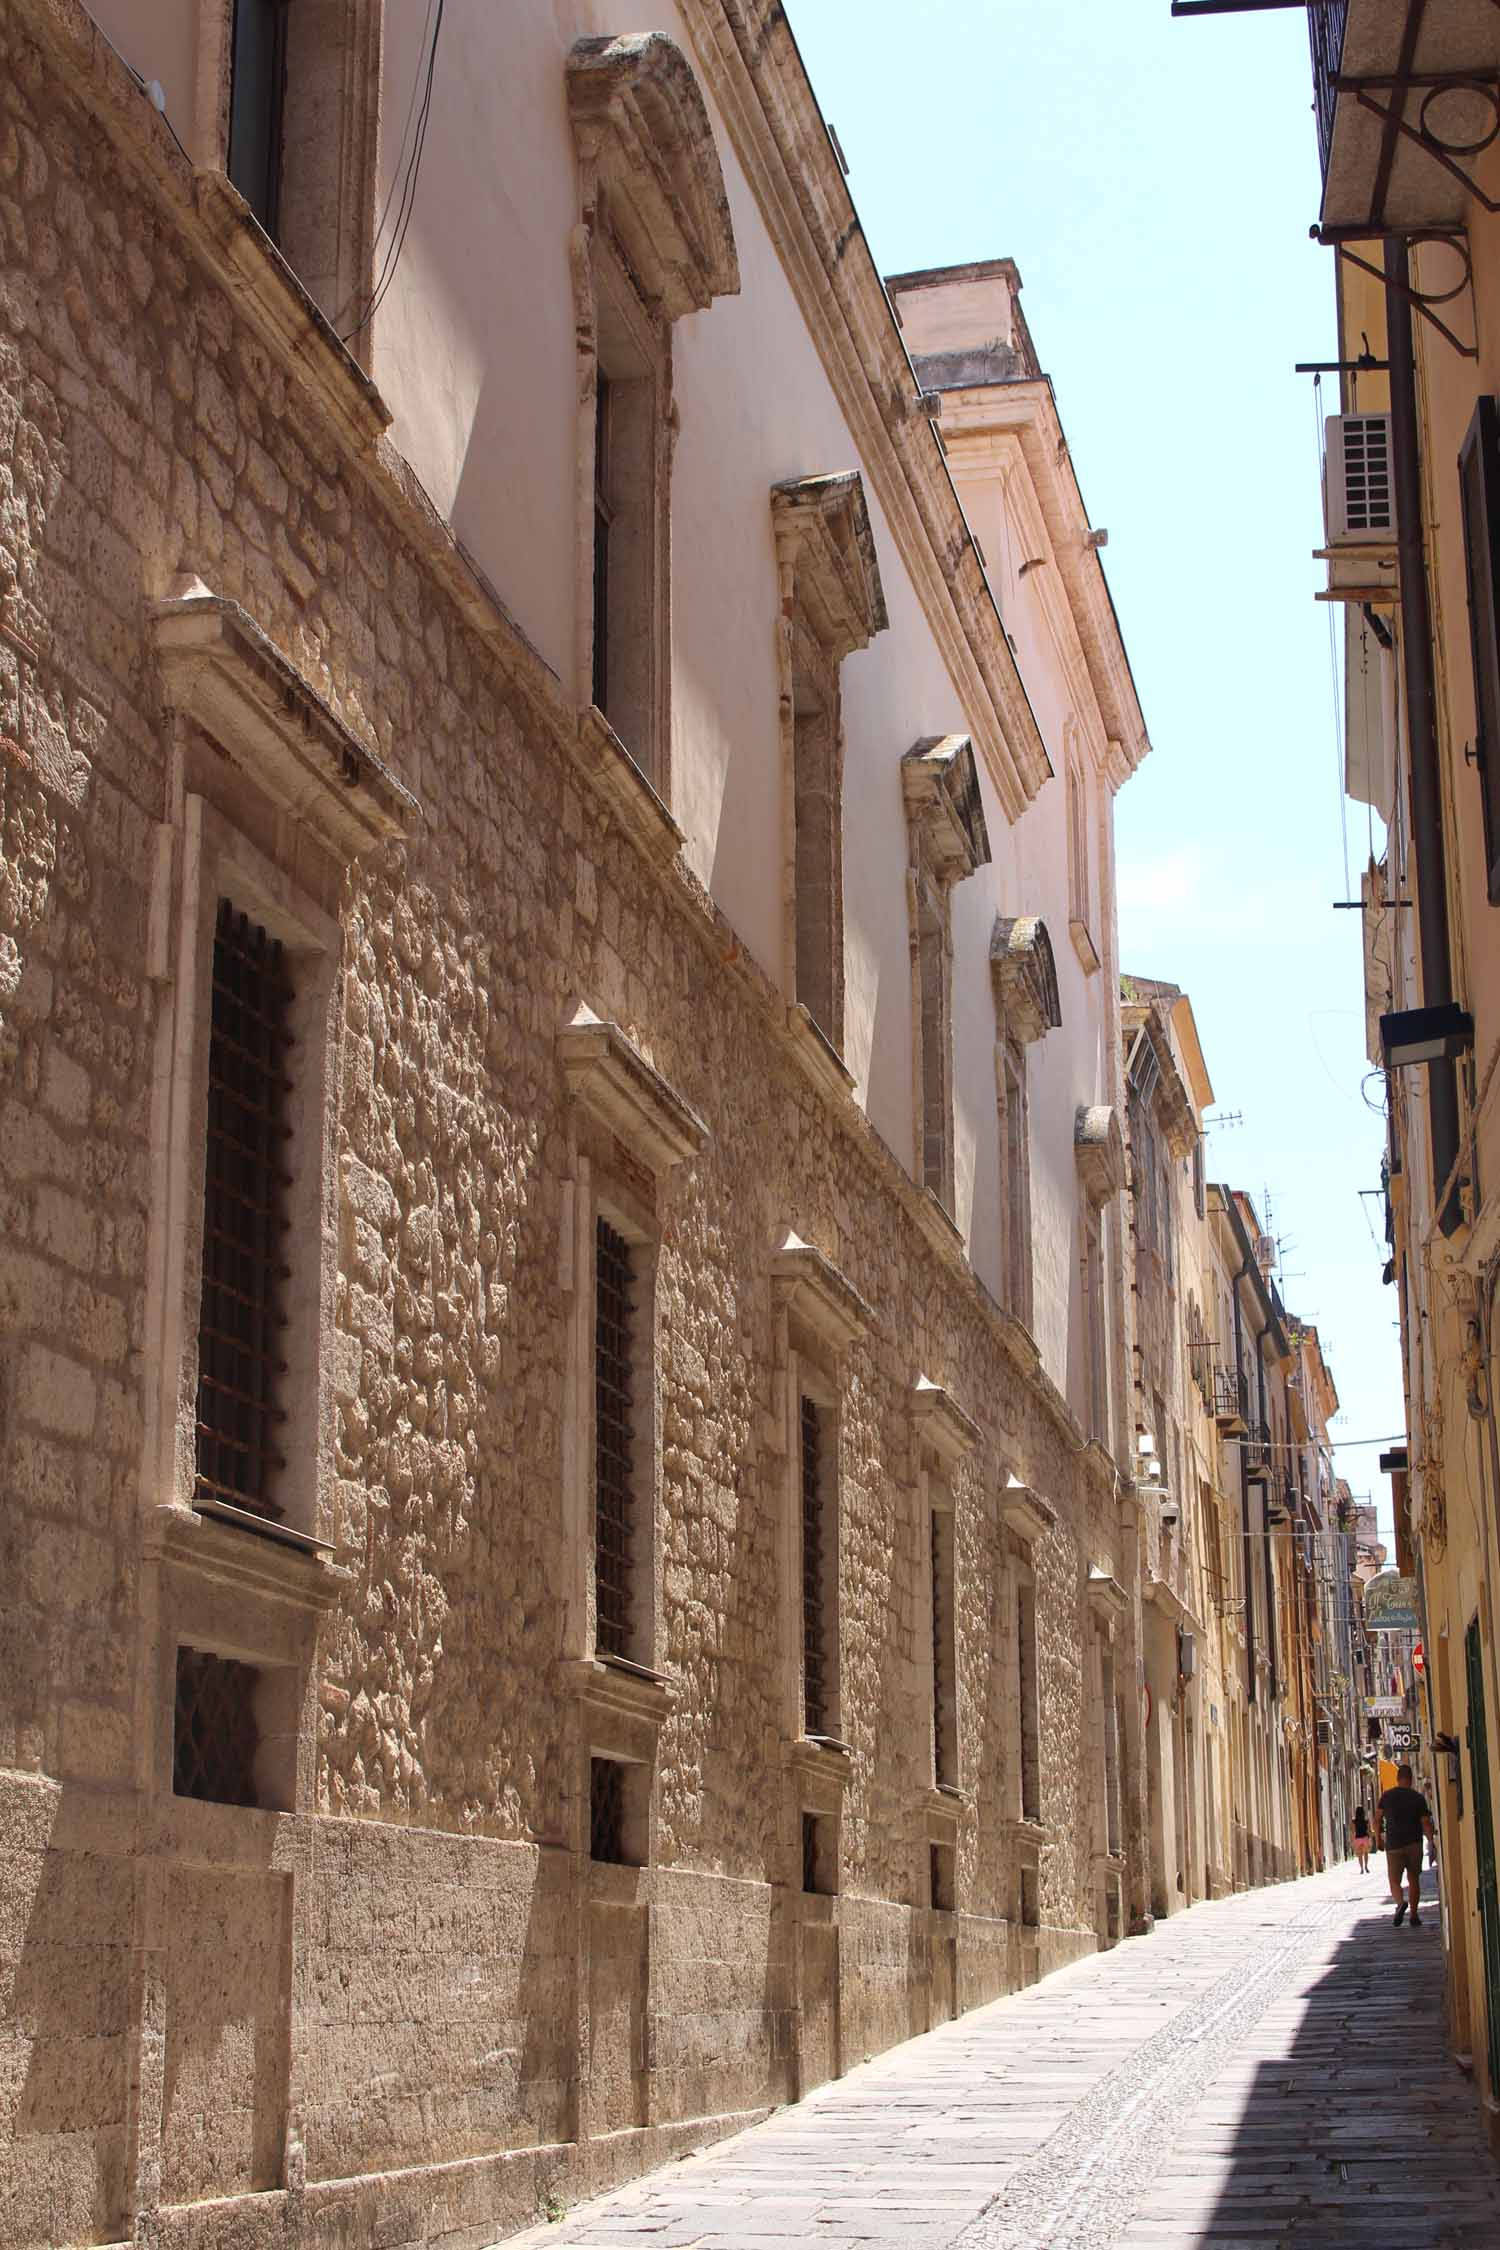 Sassari, typical alley